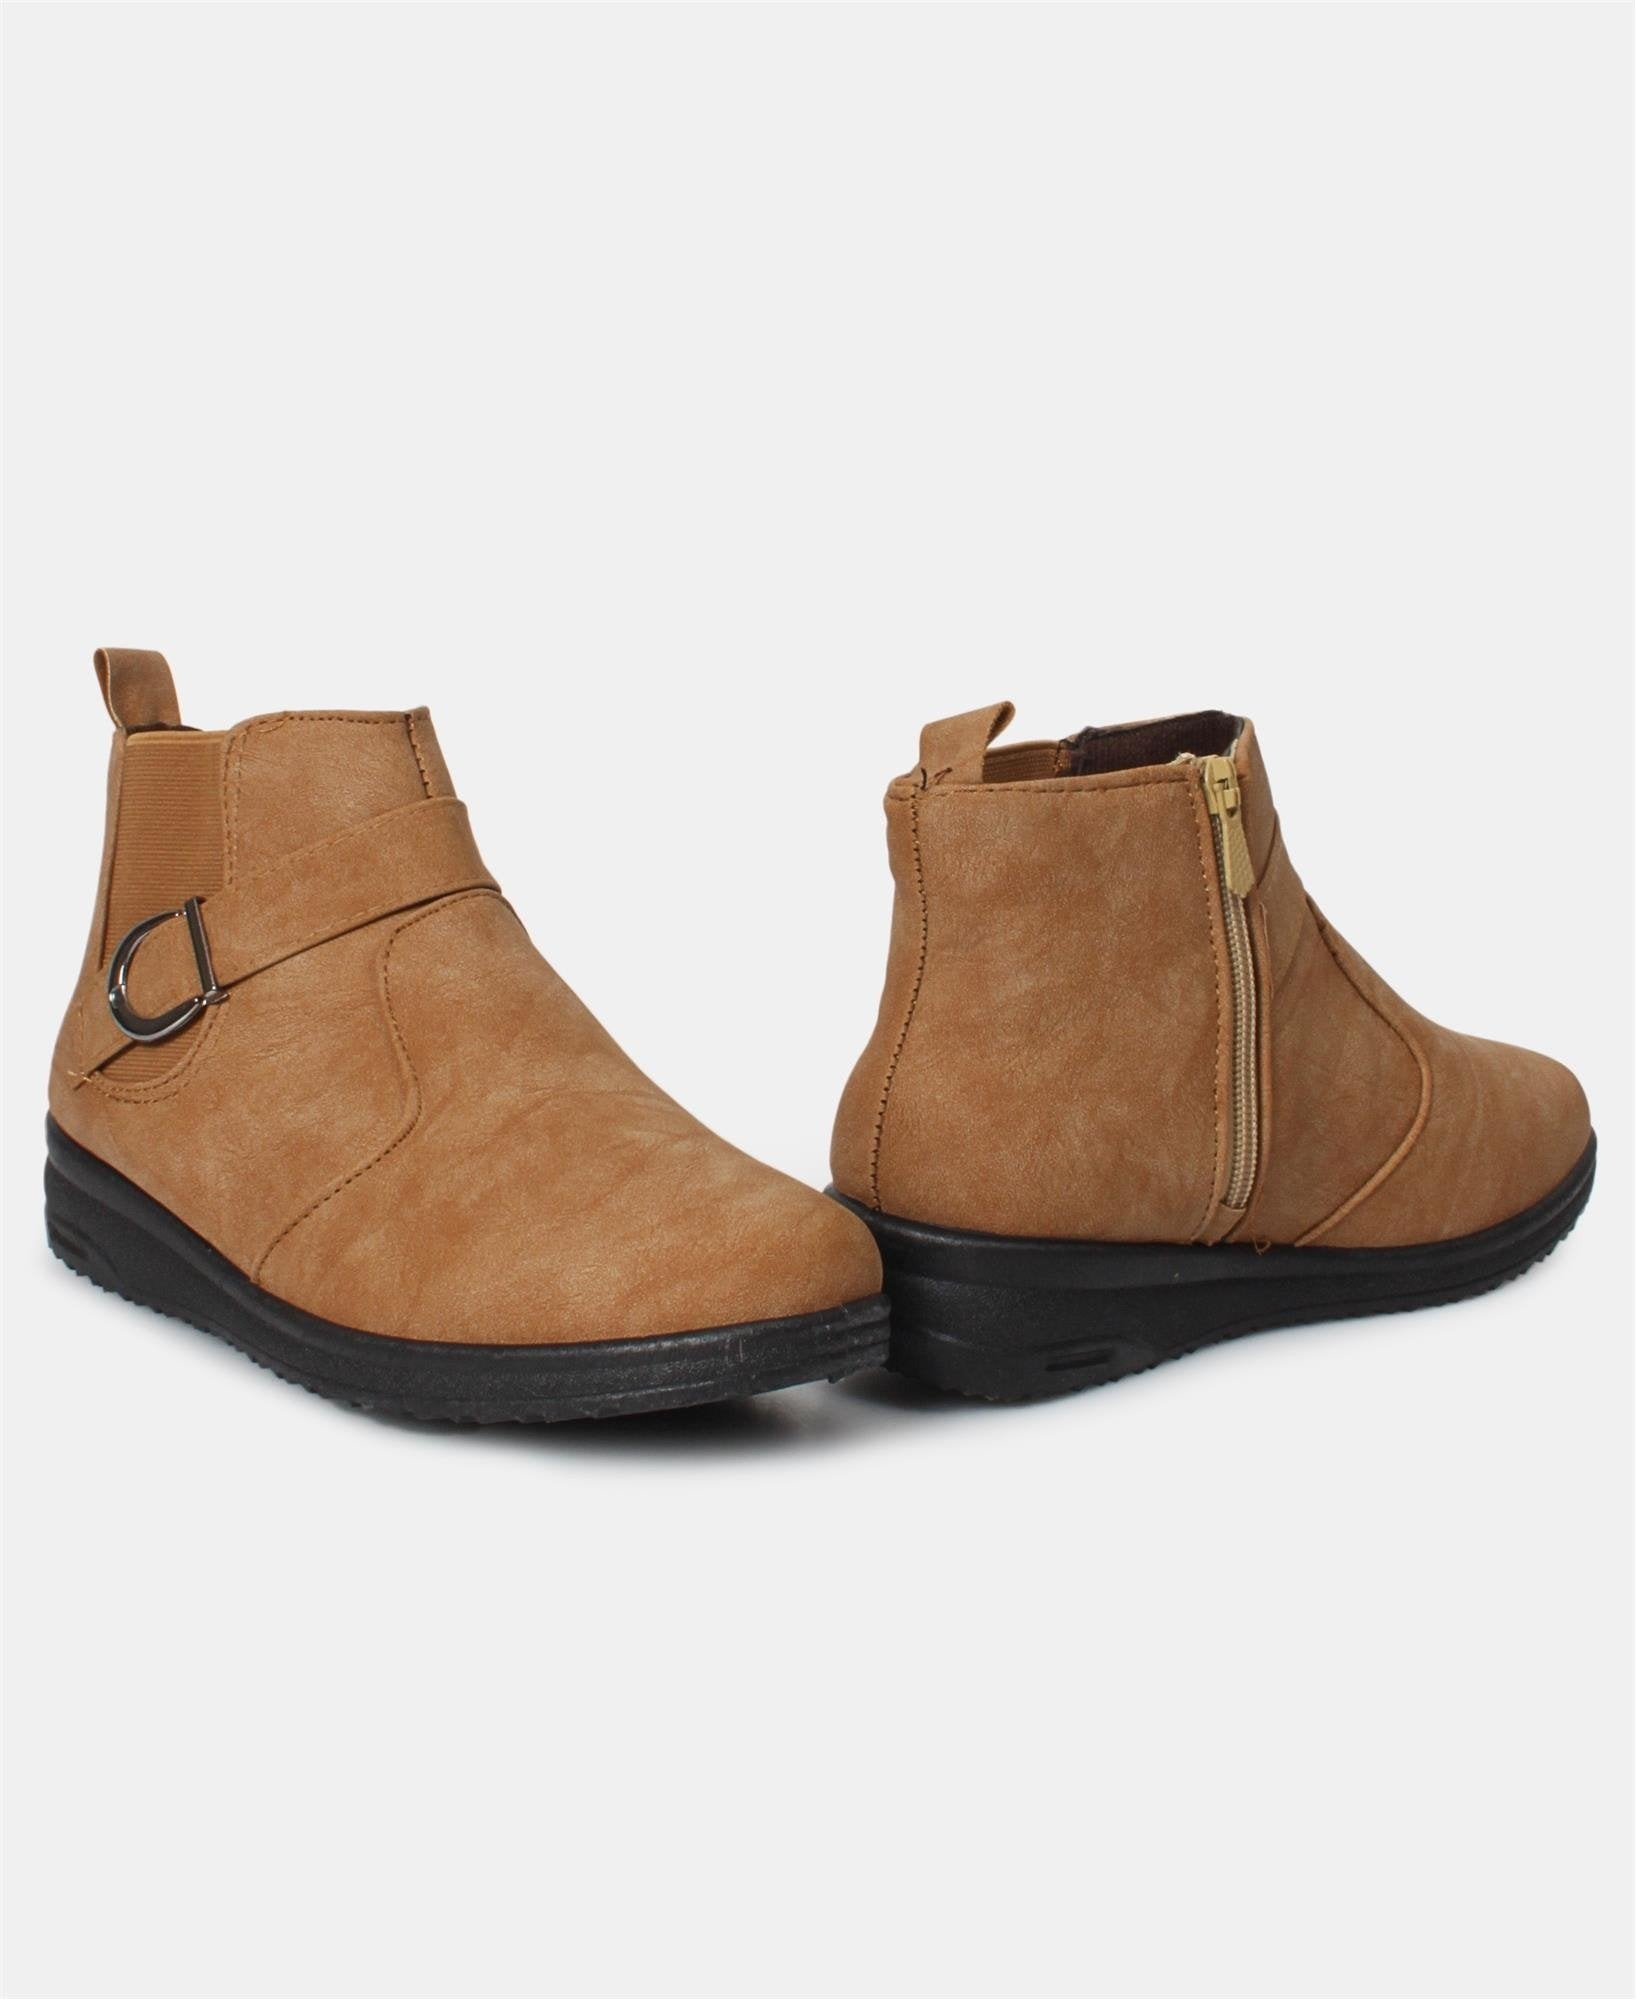 Ladies' Ankle Boots - Camel